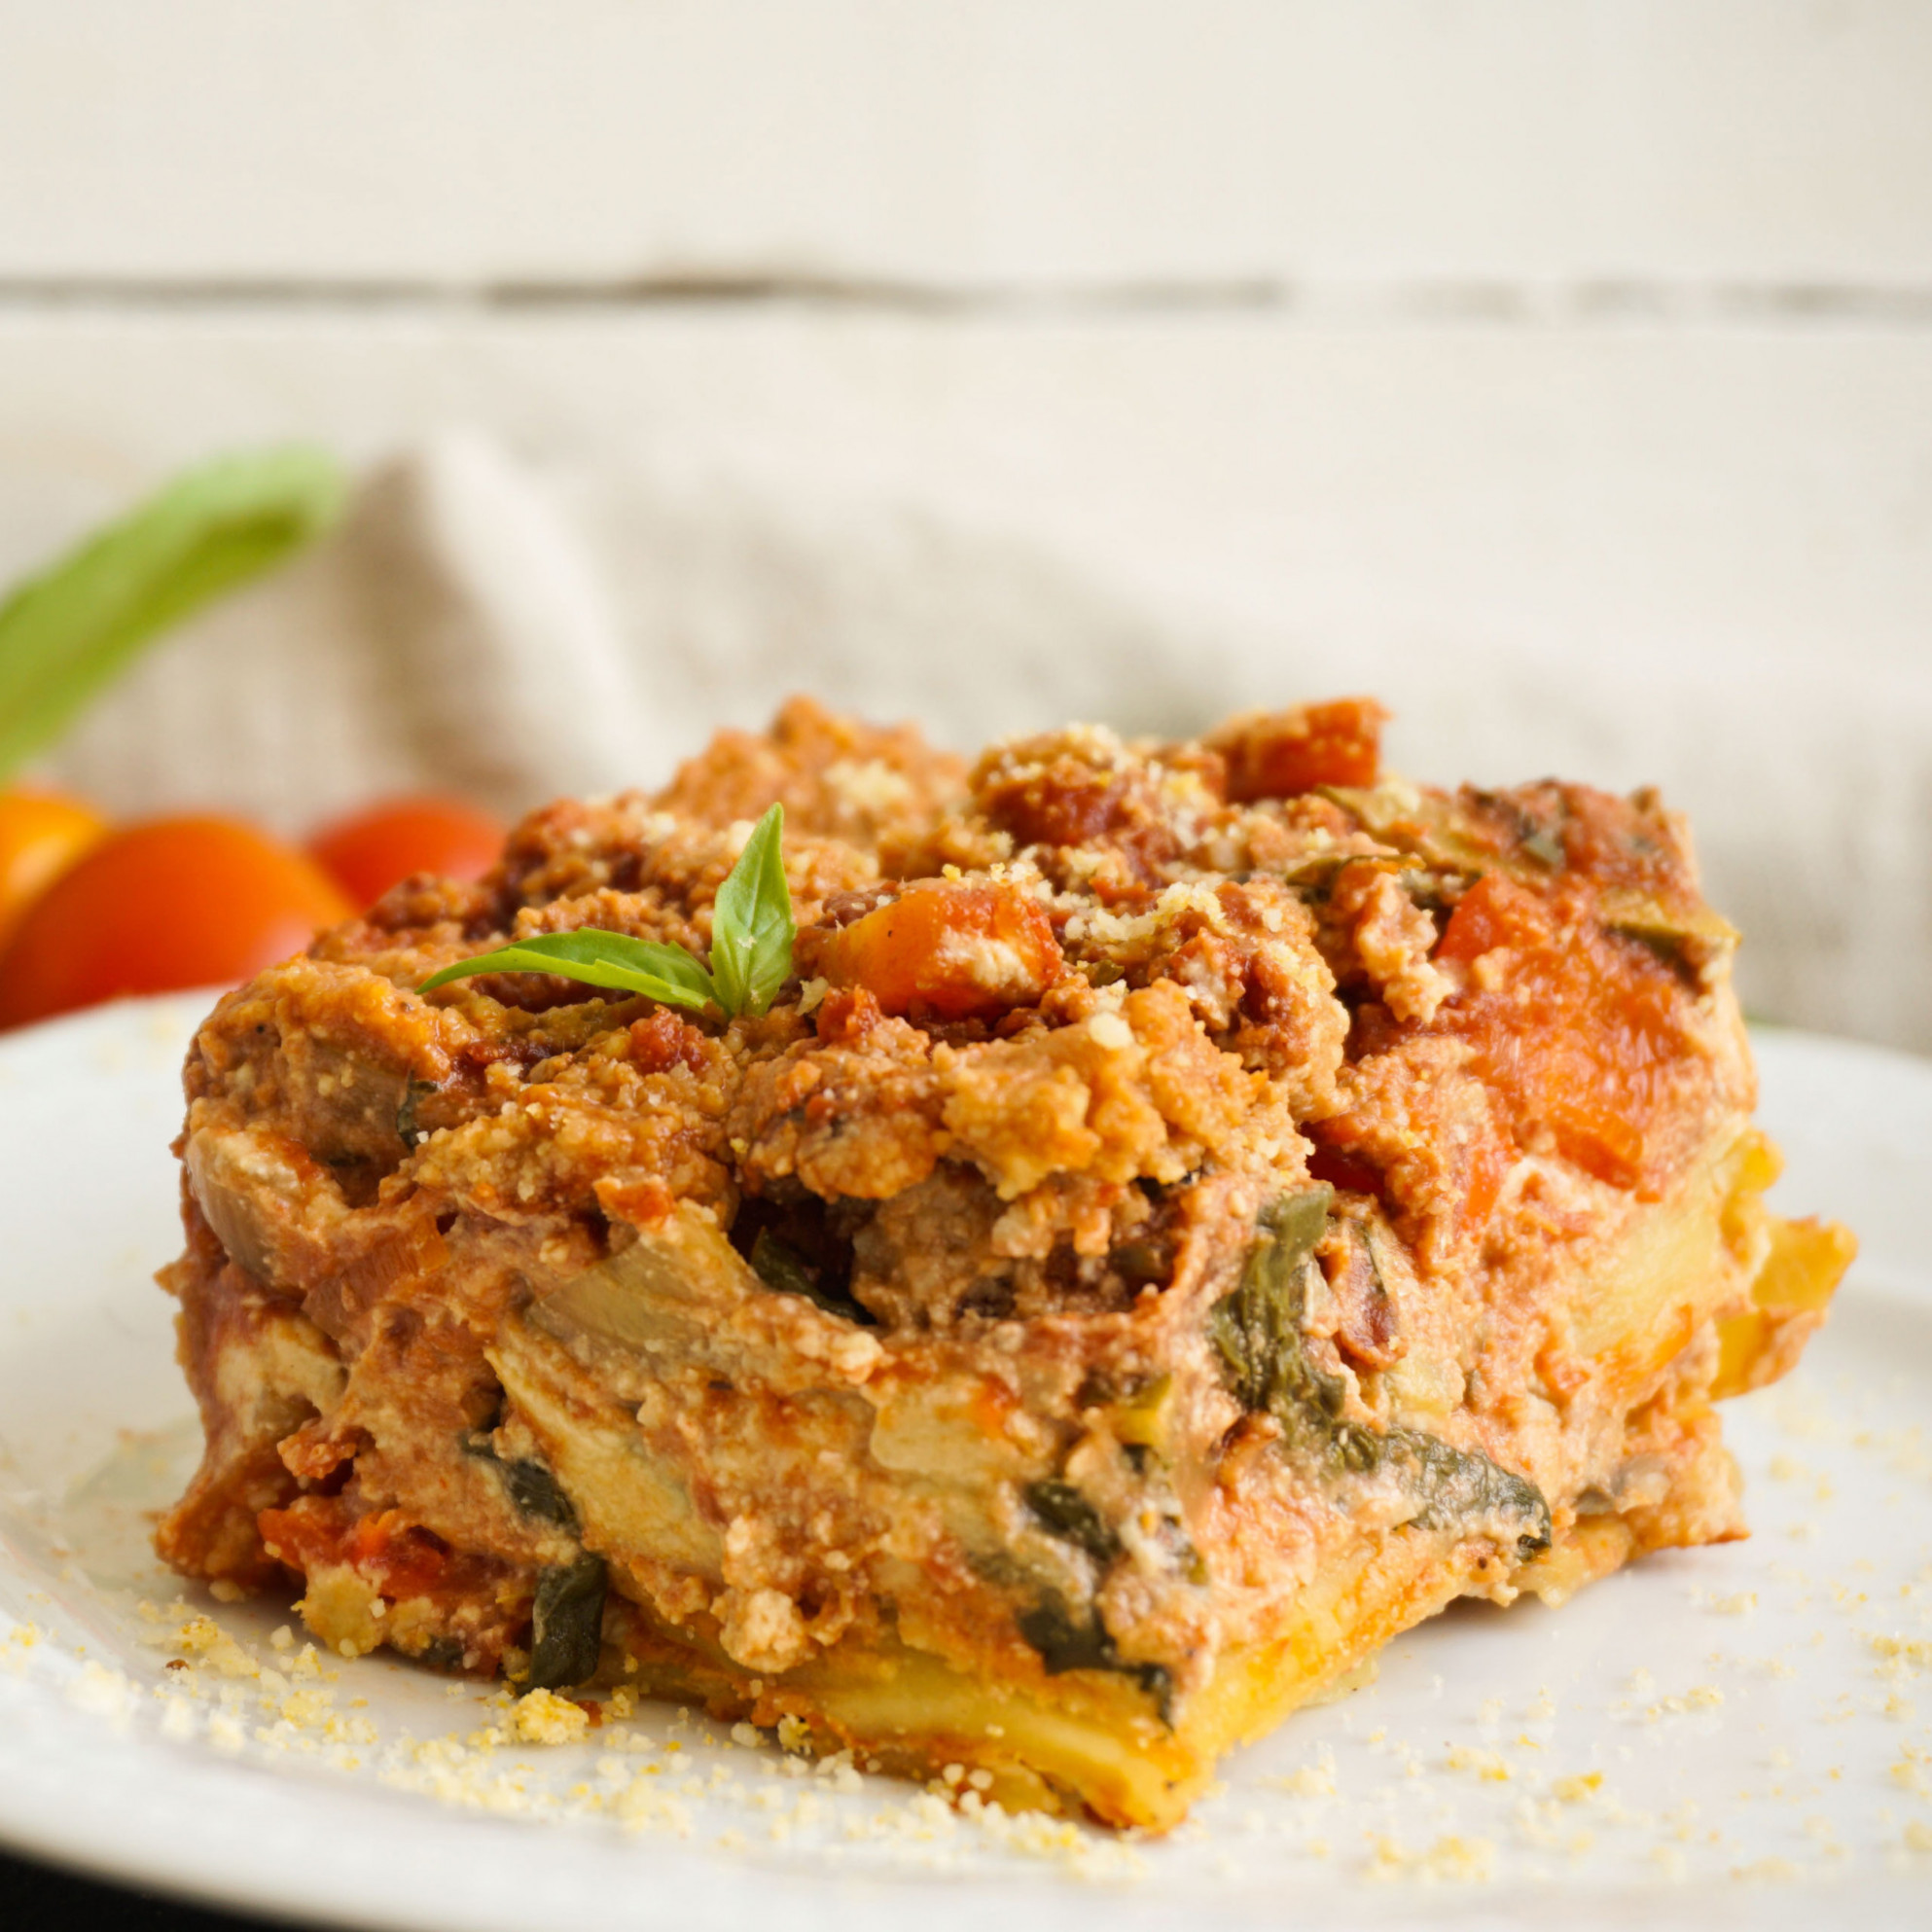 Vegan Lasagna - Recipes For Vegetarian Lasagna